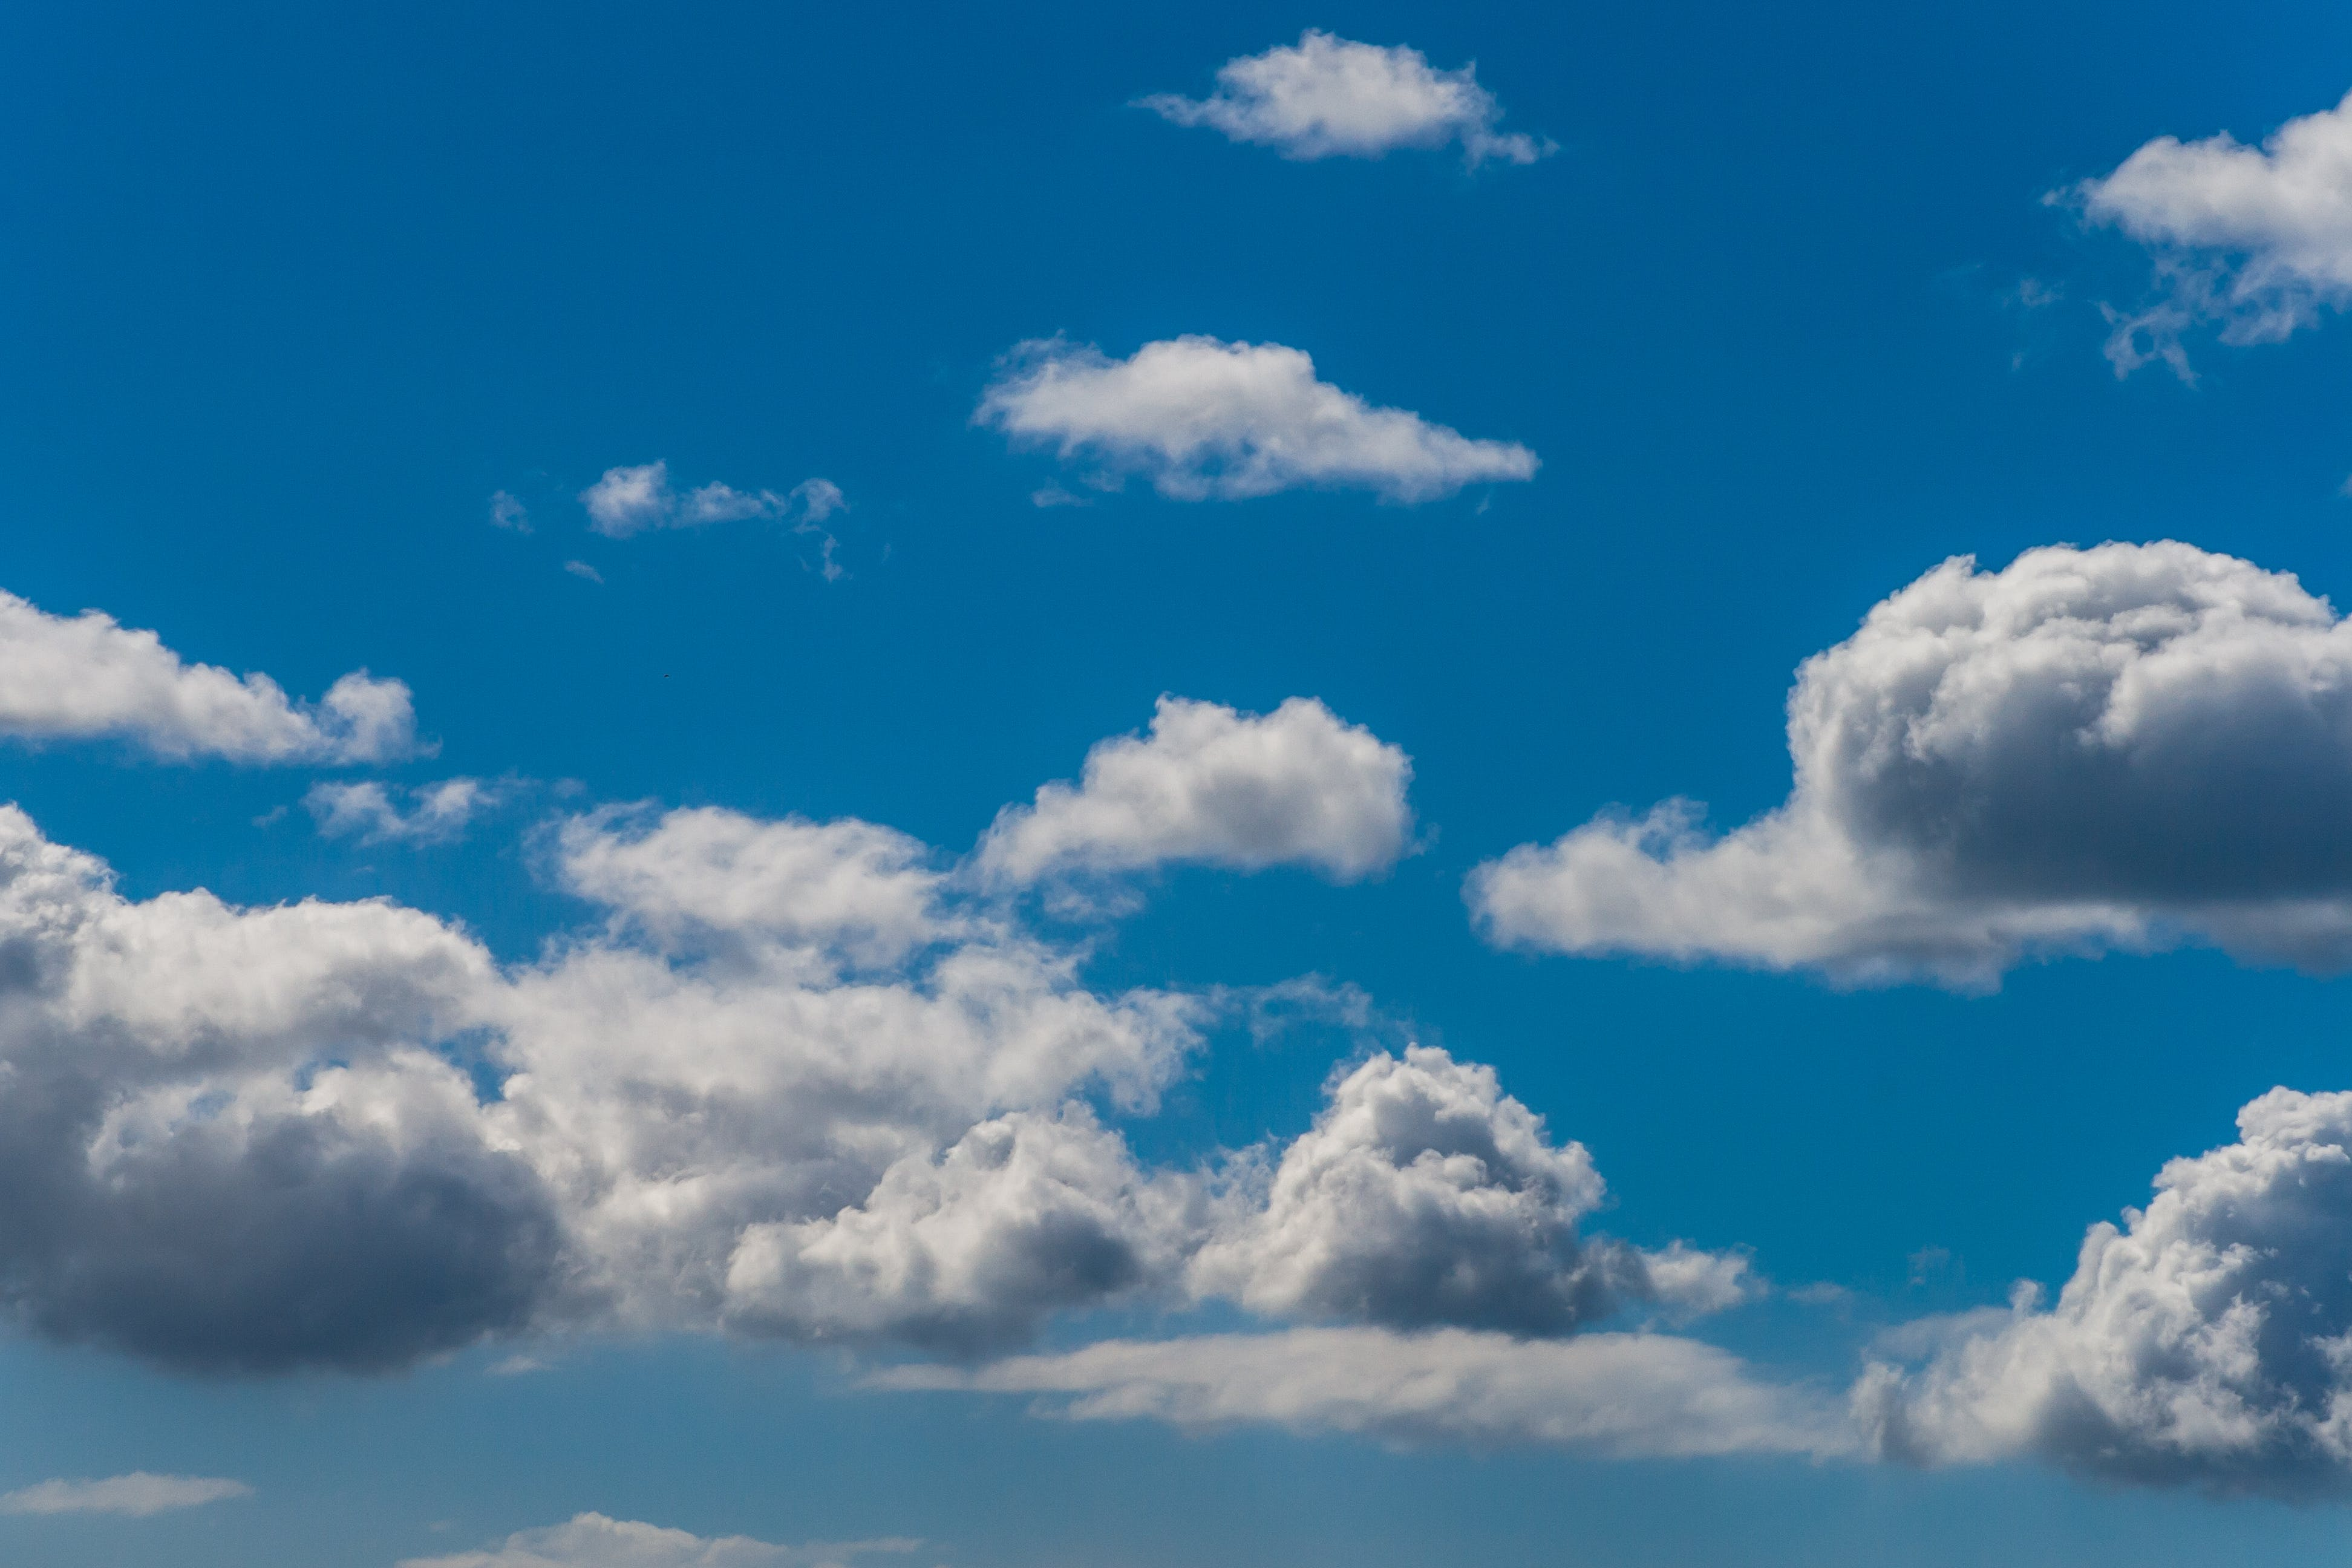 Free stock photo of background, blue, blue sky, cloud formation